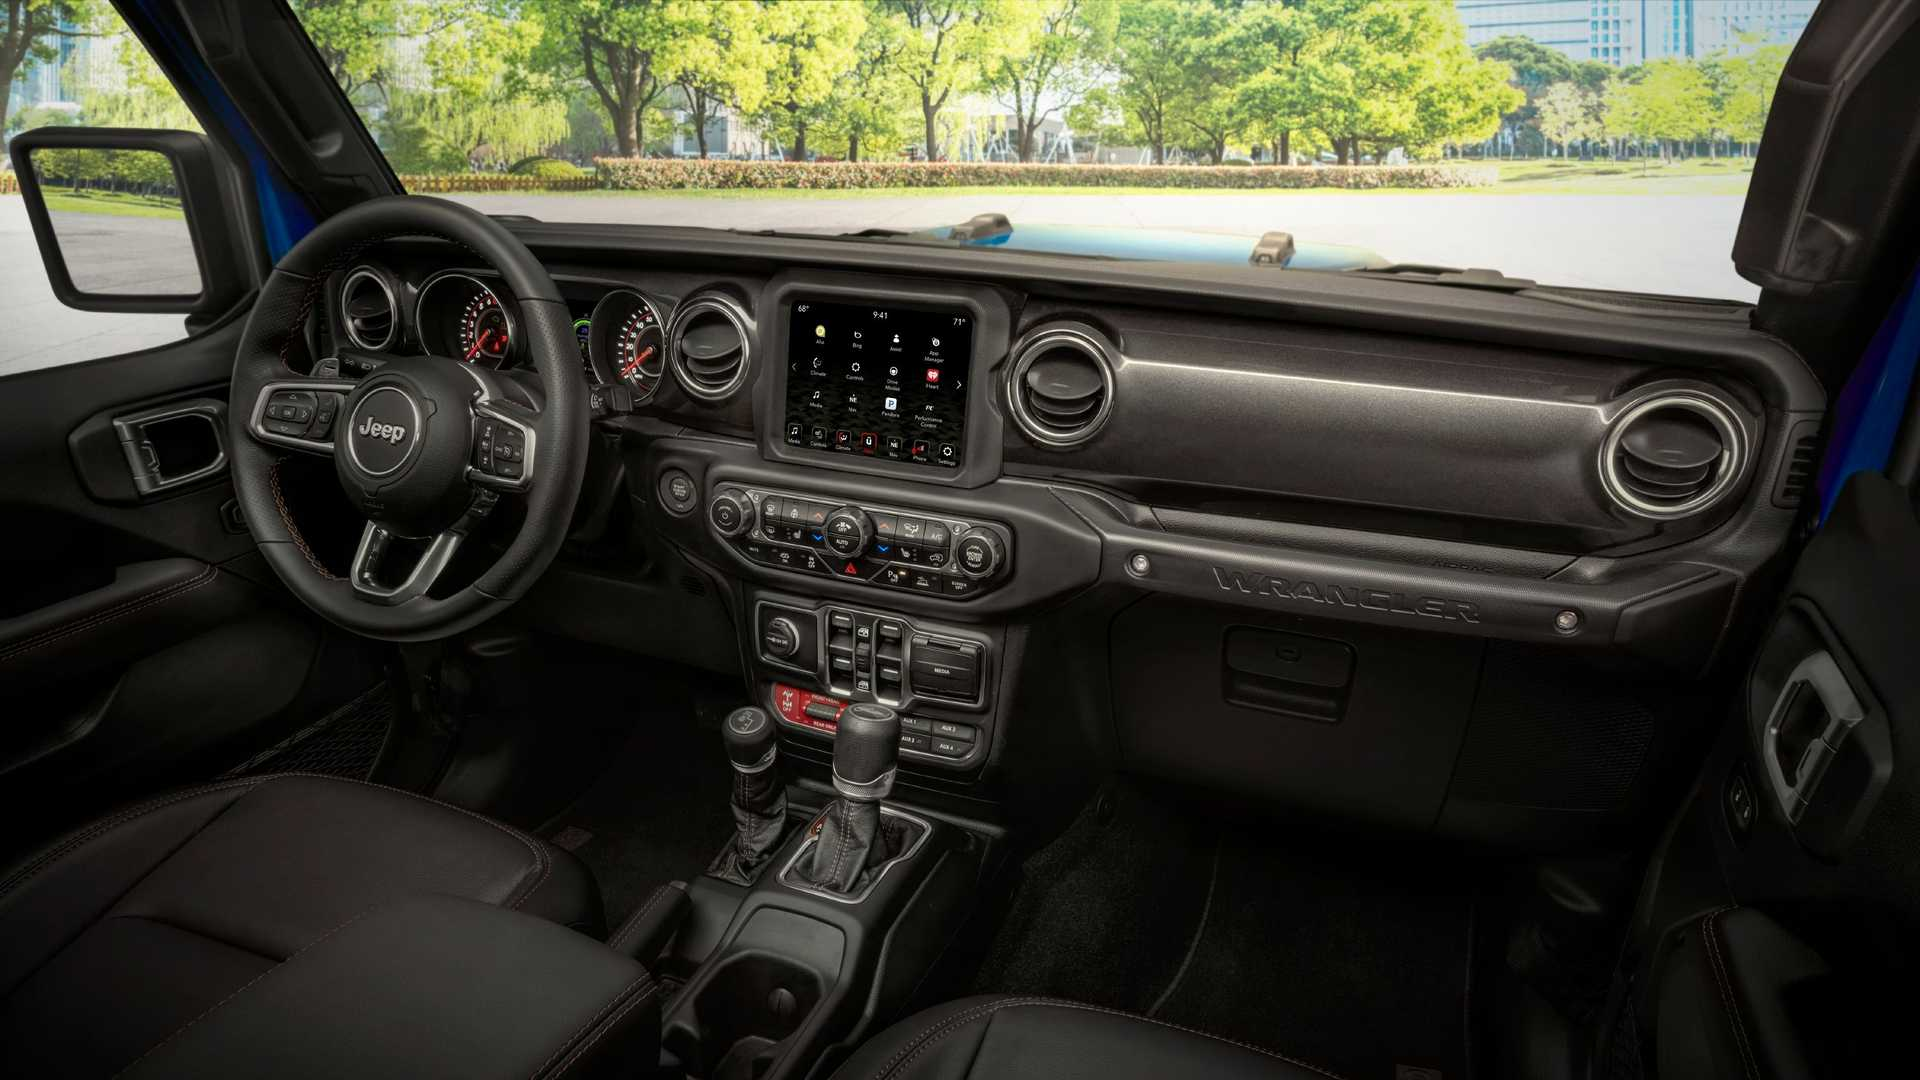 2021-jeep-wrangler-rubicon-392-interior-dash